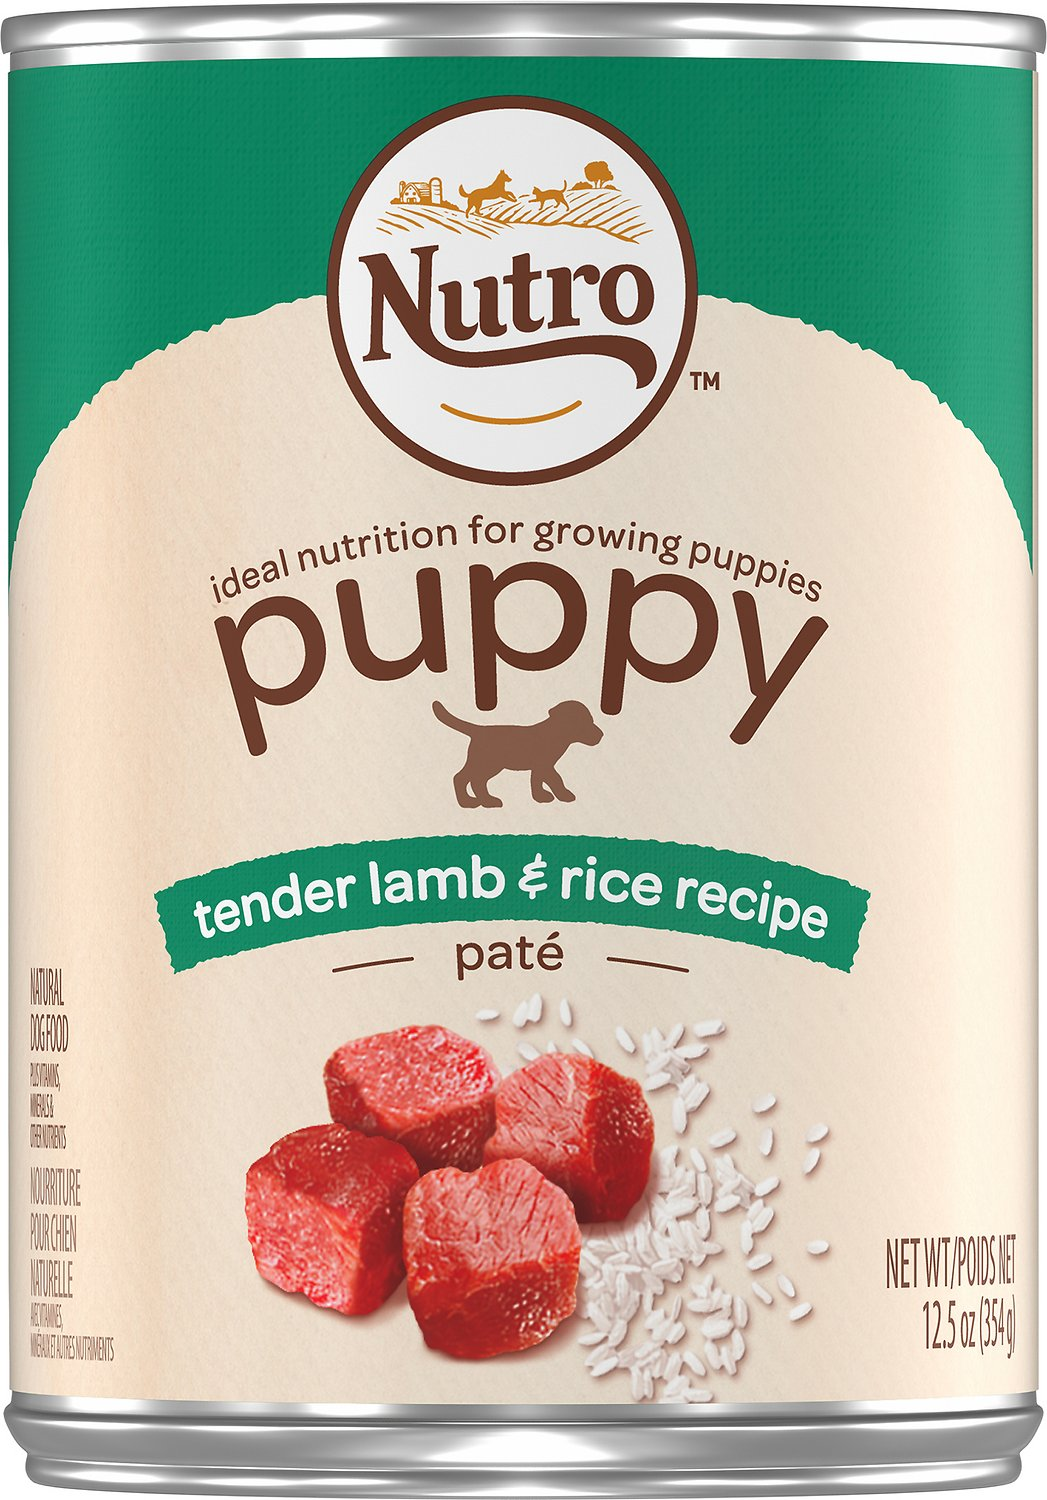 Nutro Puppy Tender Lamb & Rice Recipe Pate Canned Dog Food, 12.5-oz